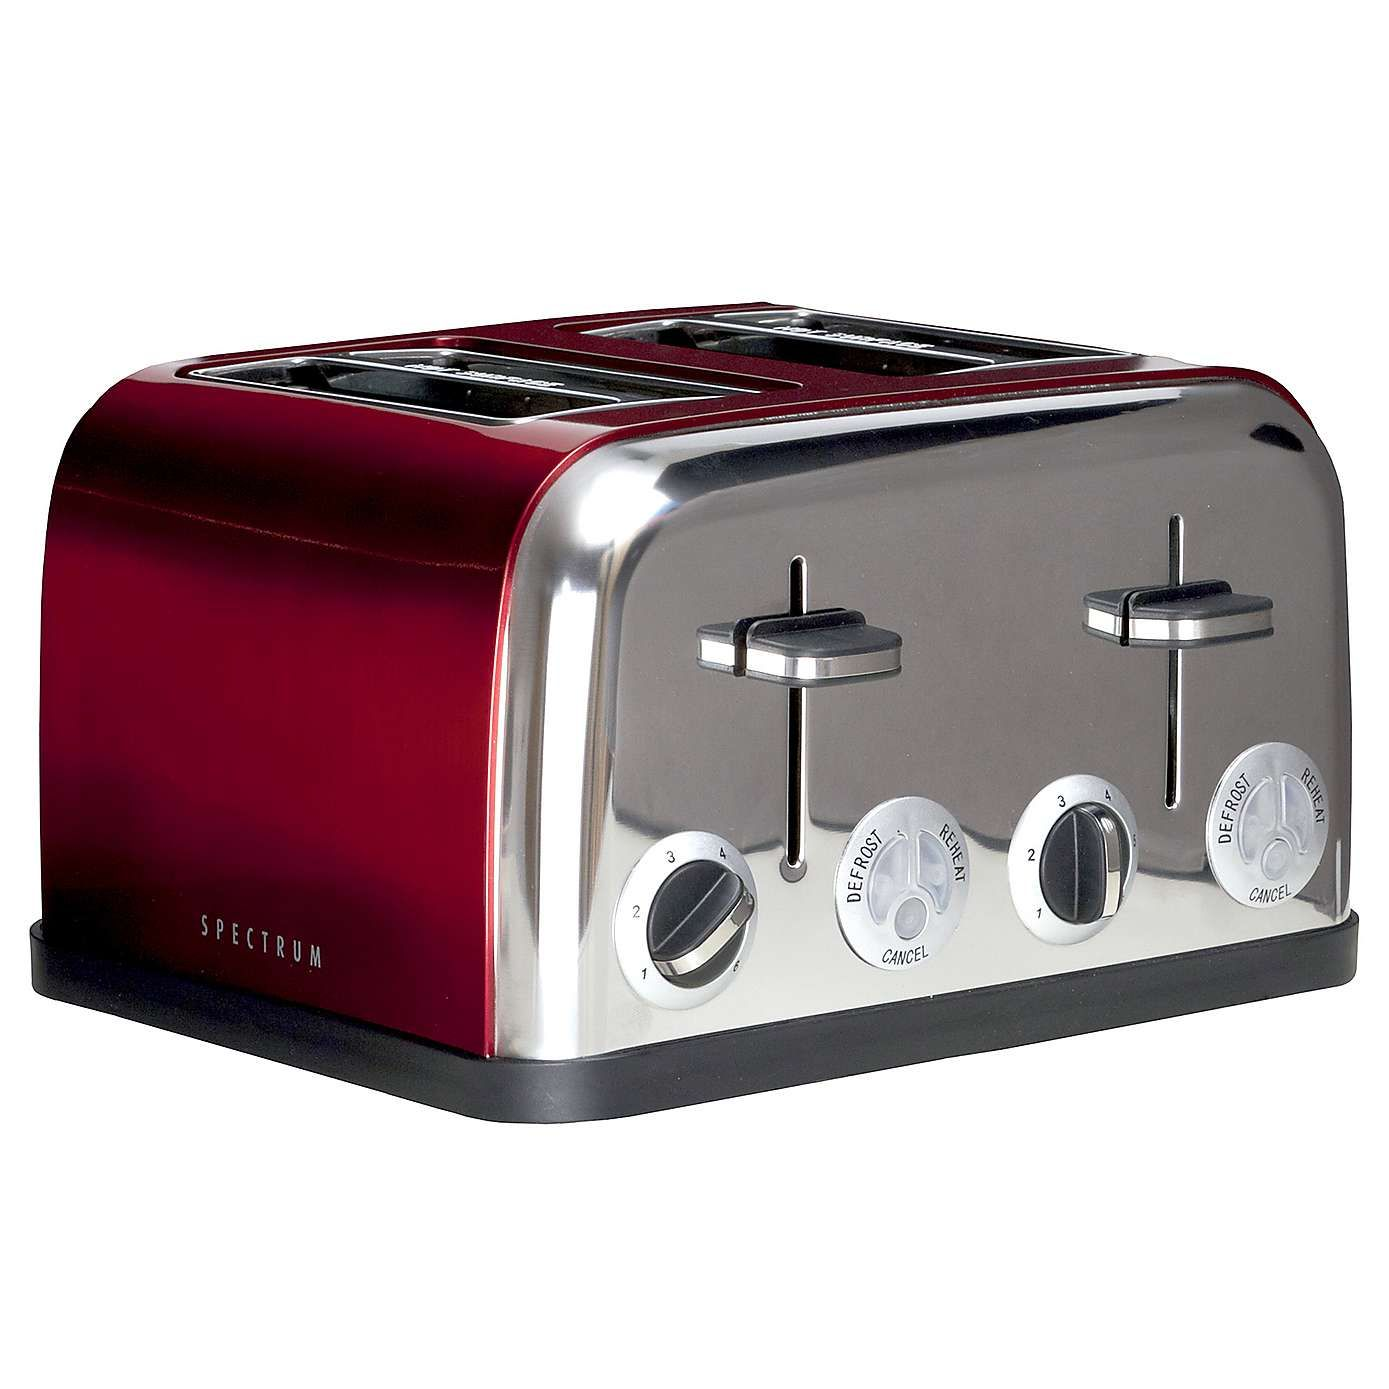 Spectrum Red 4 Slice Toaster Red 4 Slice Toaster Toaster Red Toaster